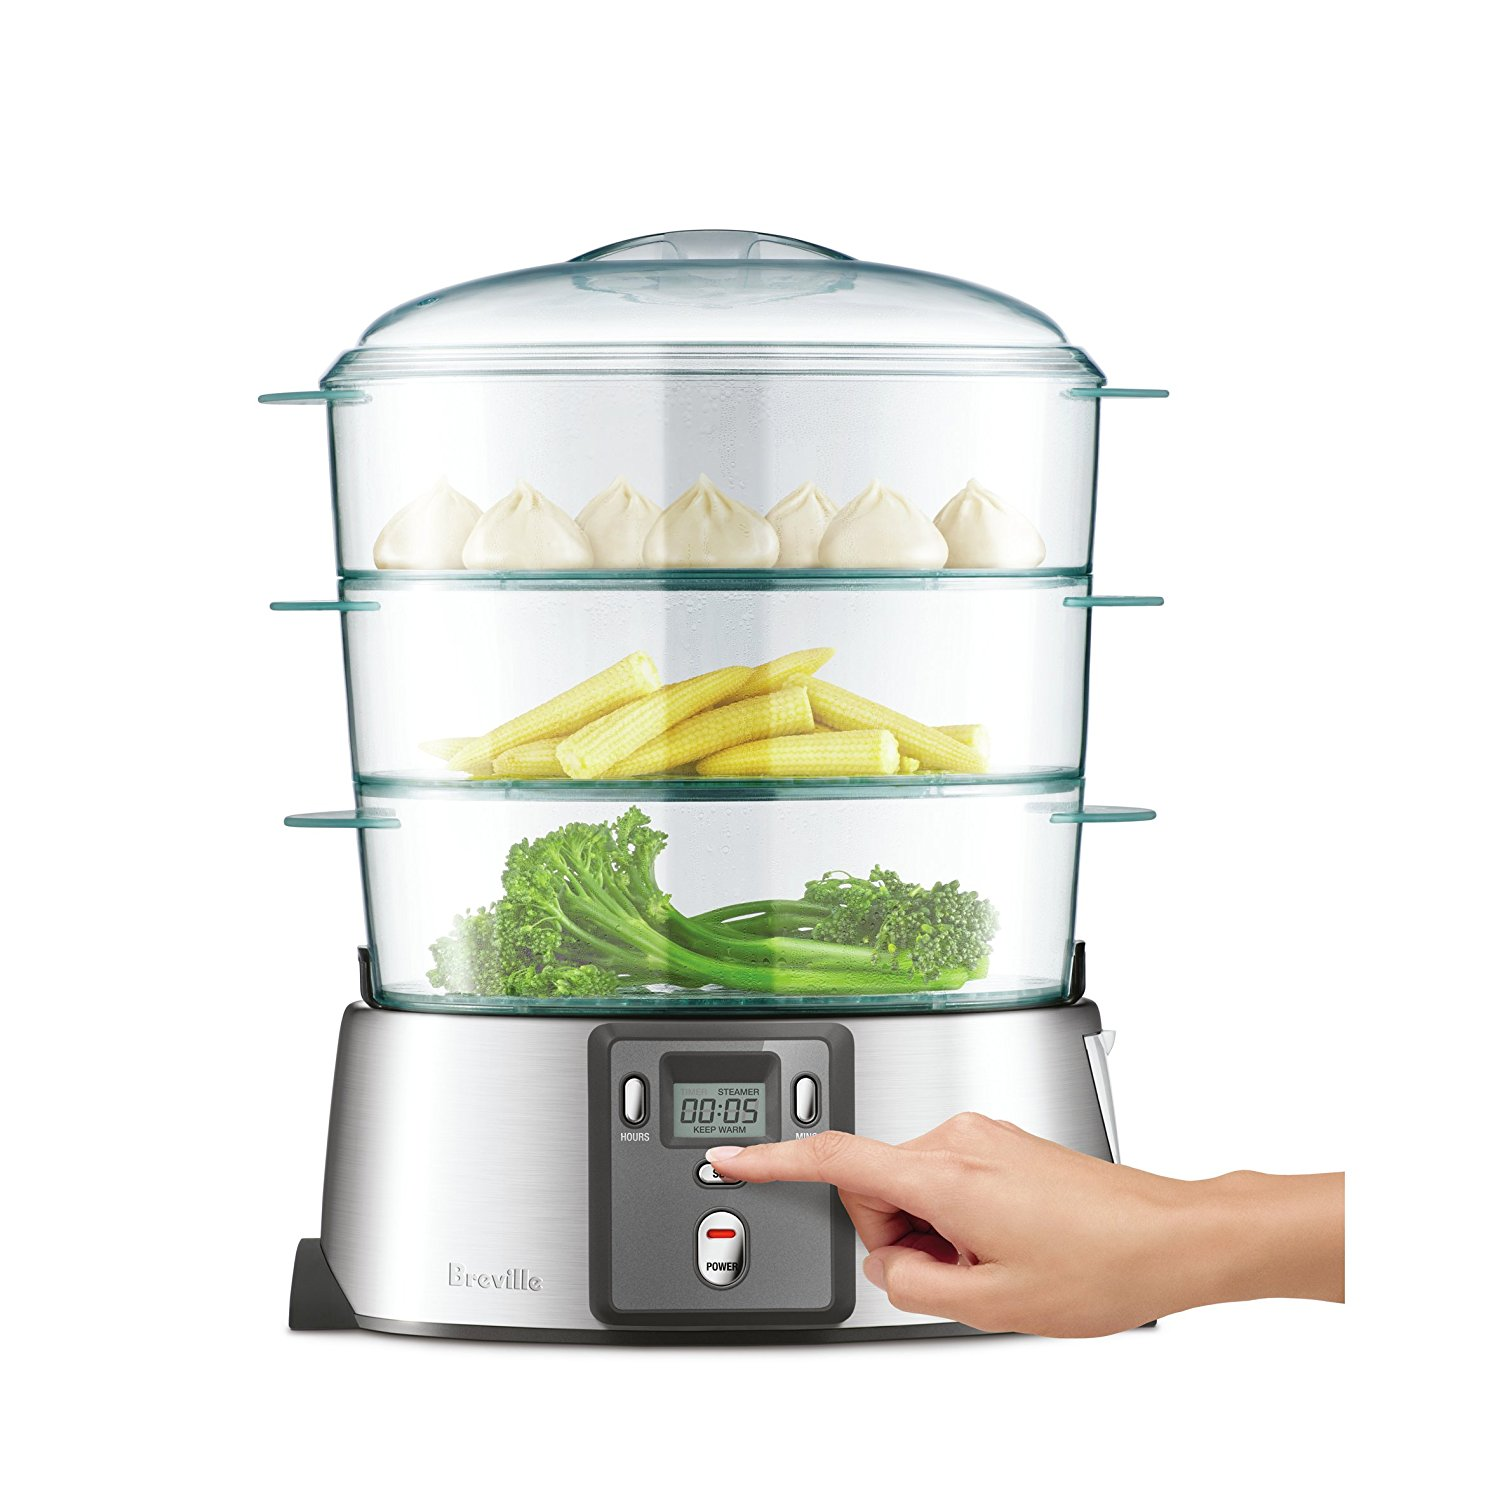 Breville BFS600XL HealthSmart Food Steamer Review